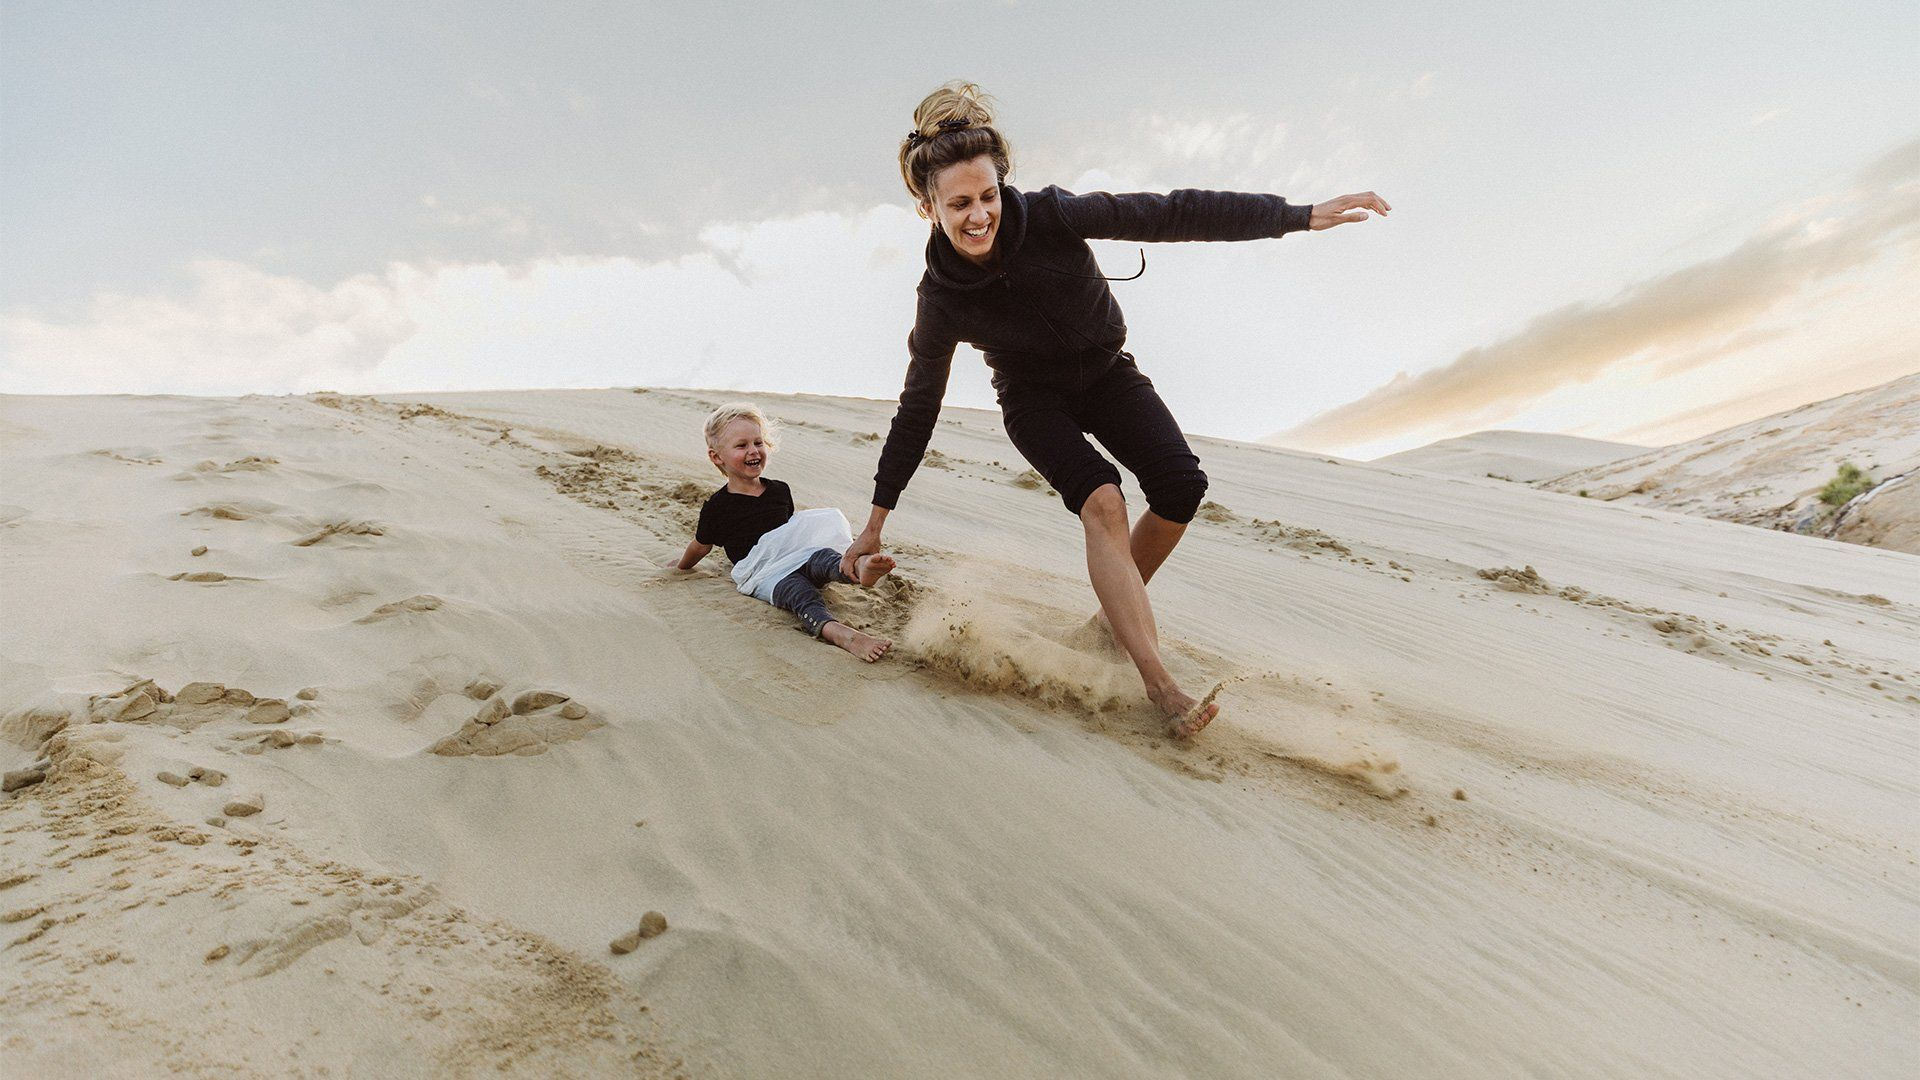 A mother runs down a sand dune, pulling her son along, both of them laughing. Photo by Christian Anderl.